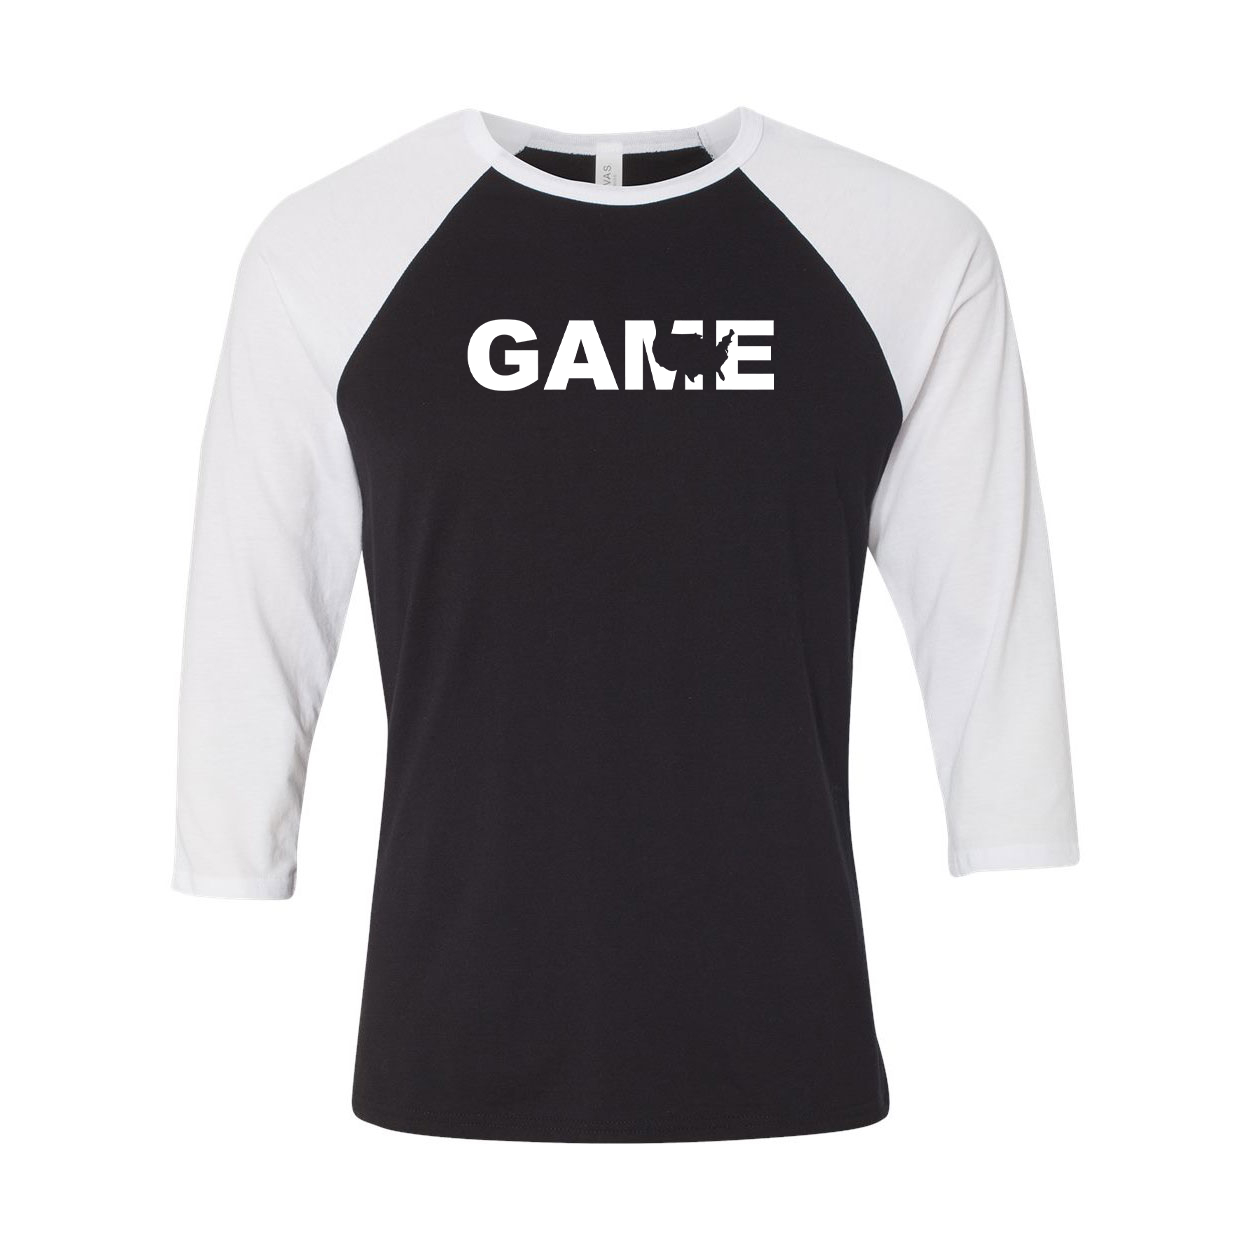 Game United States Classic Raglan Shirt Black/White (White Logo)